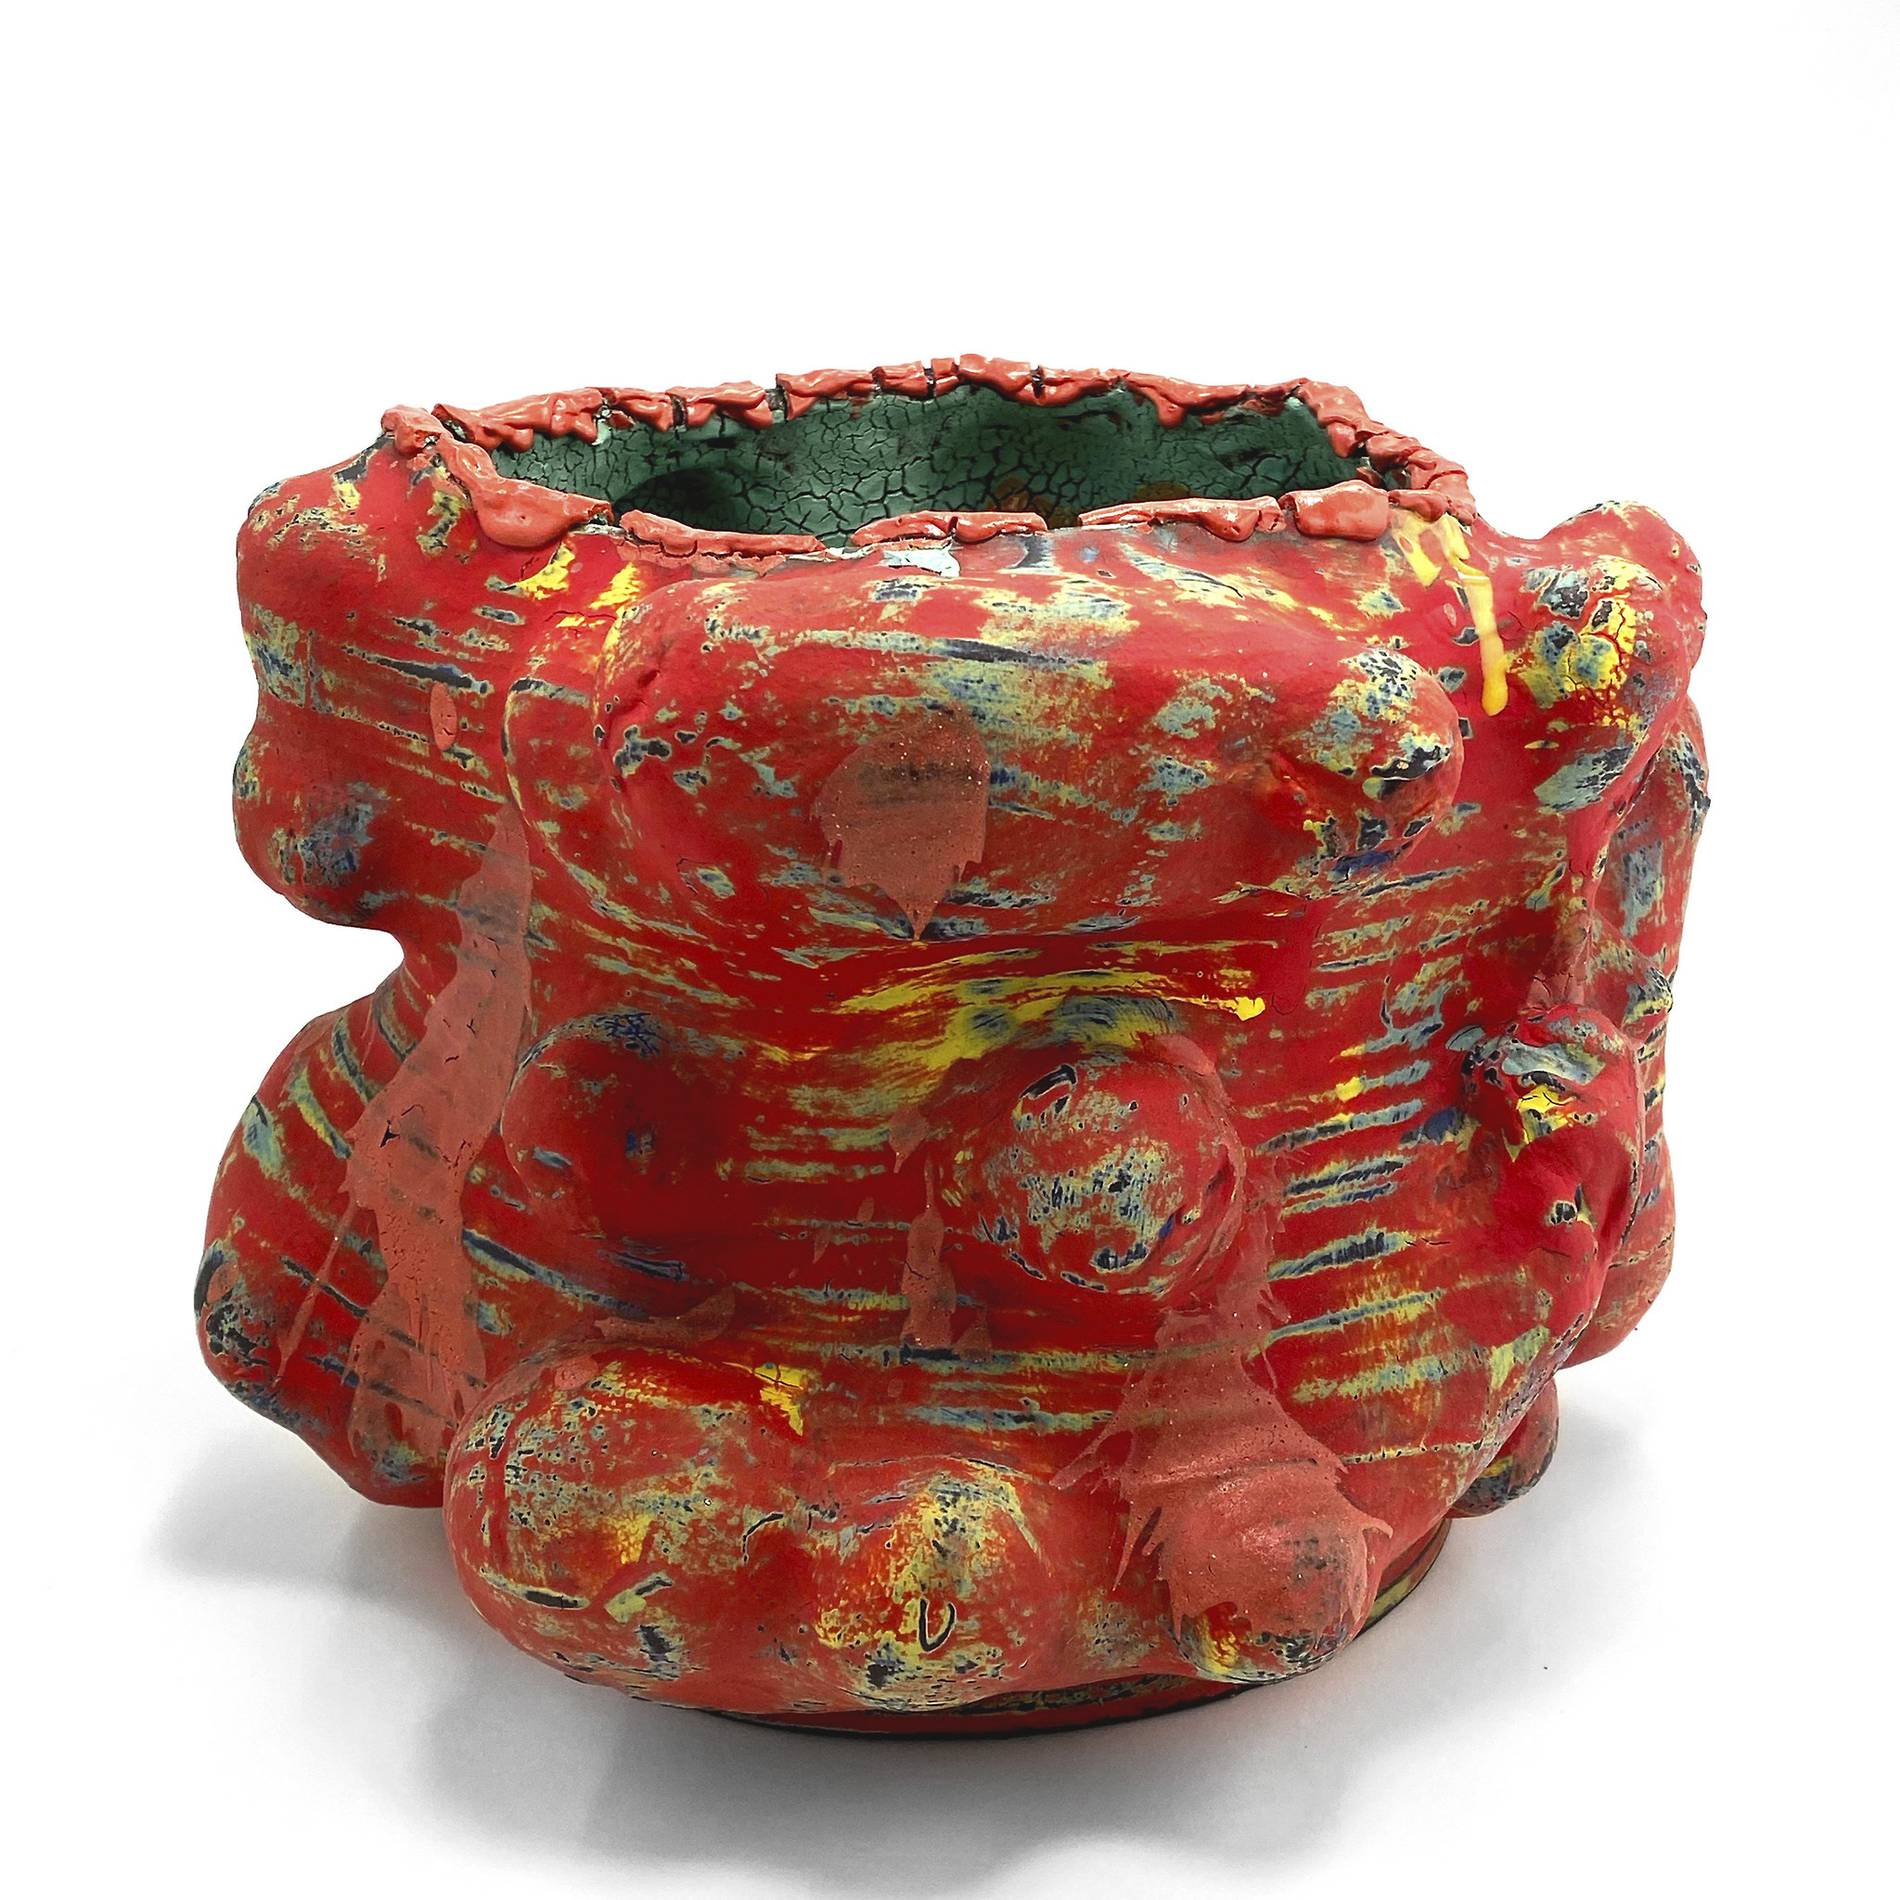 Vince_PalaciosAbraded_Vessel_Red,_2020Clay,_glaze,_various_slip_and_flux,_multiple_firing13_5_x_10_InchesCourtesy_of_ODD_ARK_•_LA.jpg